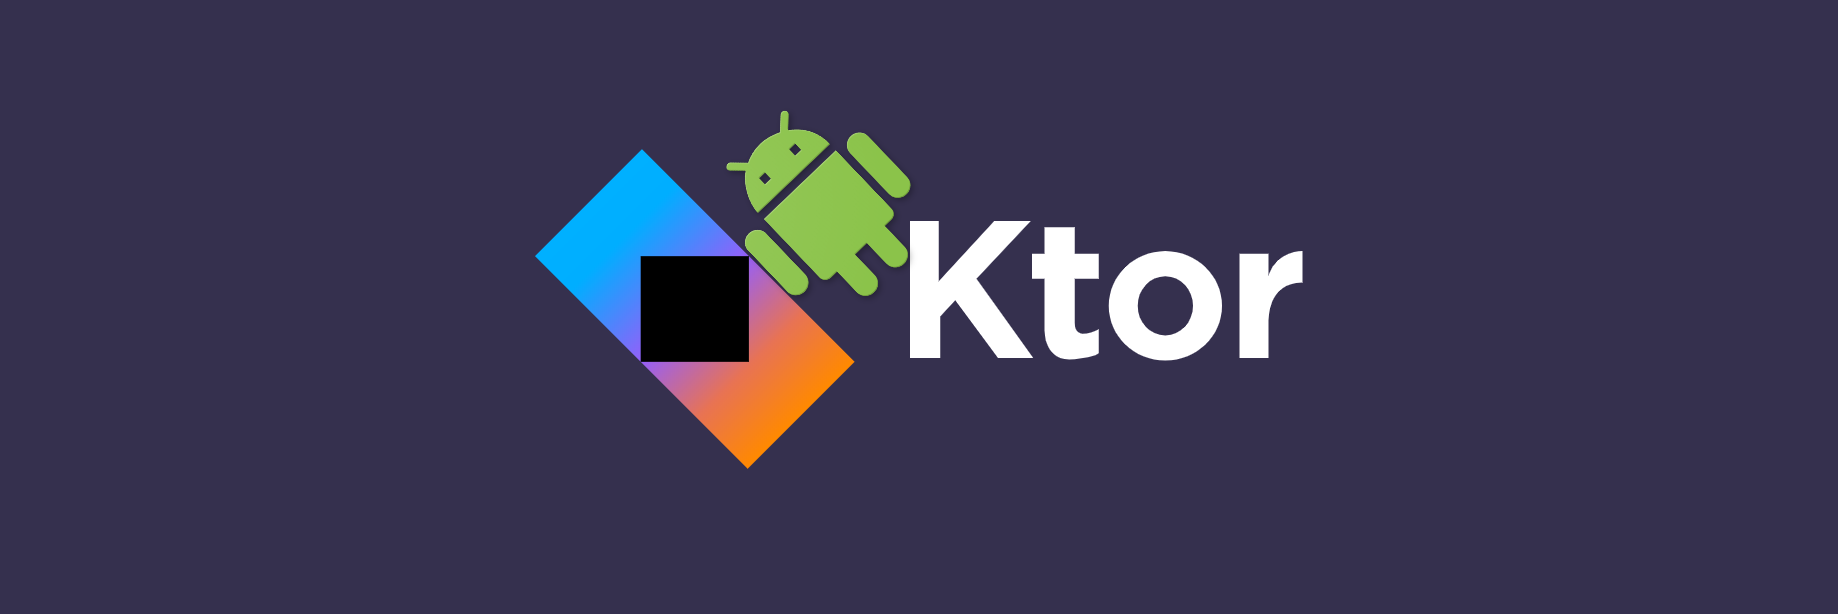 Ktor as HTTP client for Android